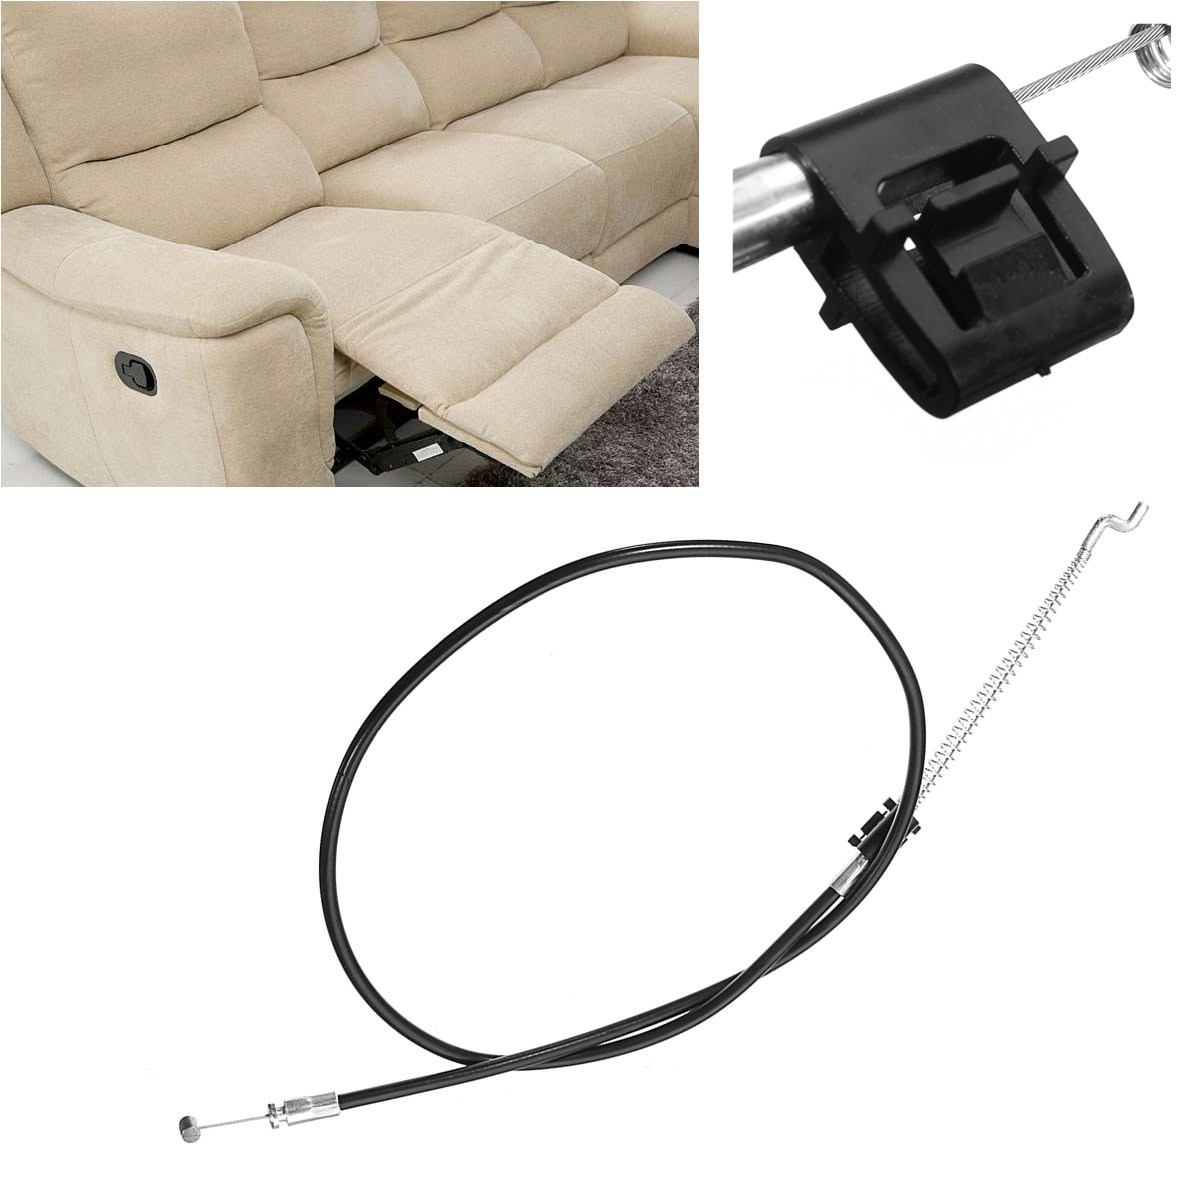 Groovy Us 2 21 18 Off 14Cm 90Cm Car Recliner Handle Multi Function Pressure Bar Pull Replacement Cable Sofa Chair Replacement In Car Switches Relays From Inzonedesignstudio Interior Chair Design Inzonedesignstudiocom